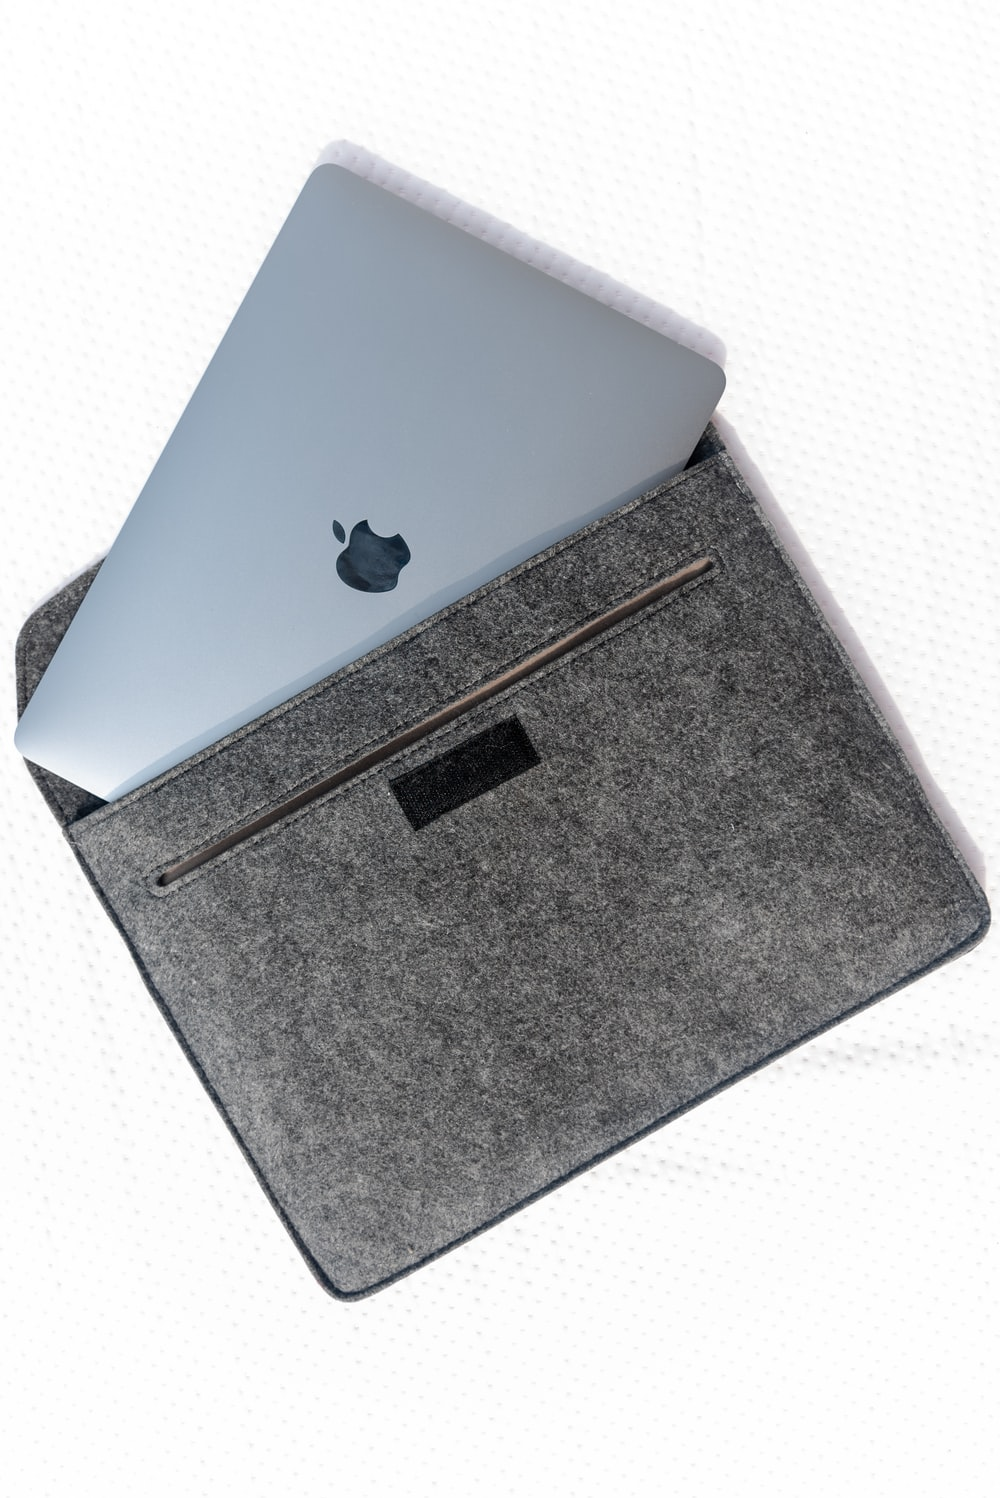 silver macbook on gray textile